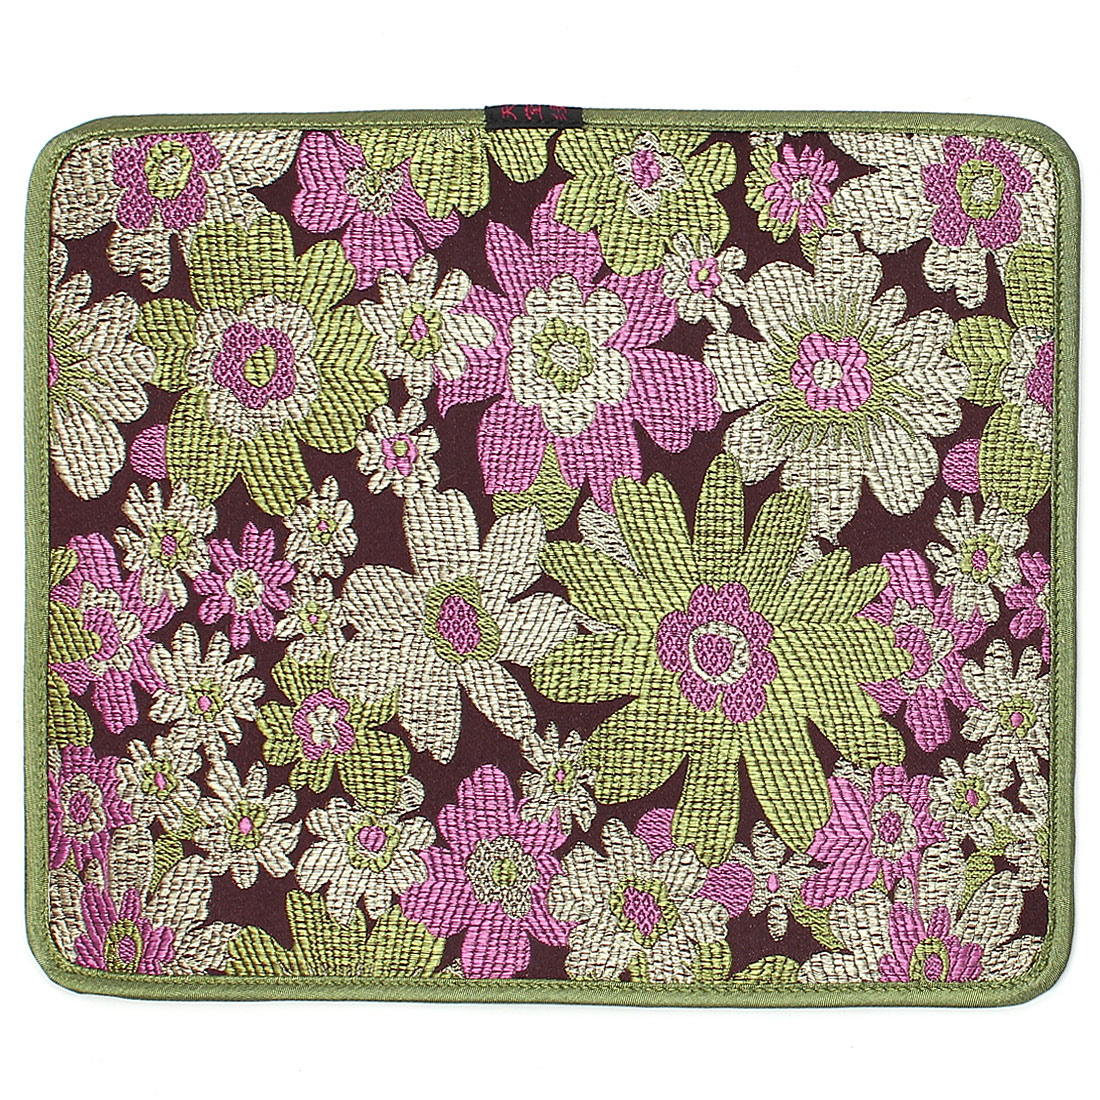 Green Embroidery Floral Pattern Nonslip Silicone Desktop Computer Mouse Pad Mat